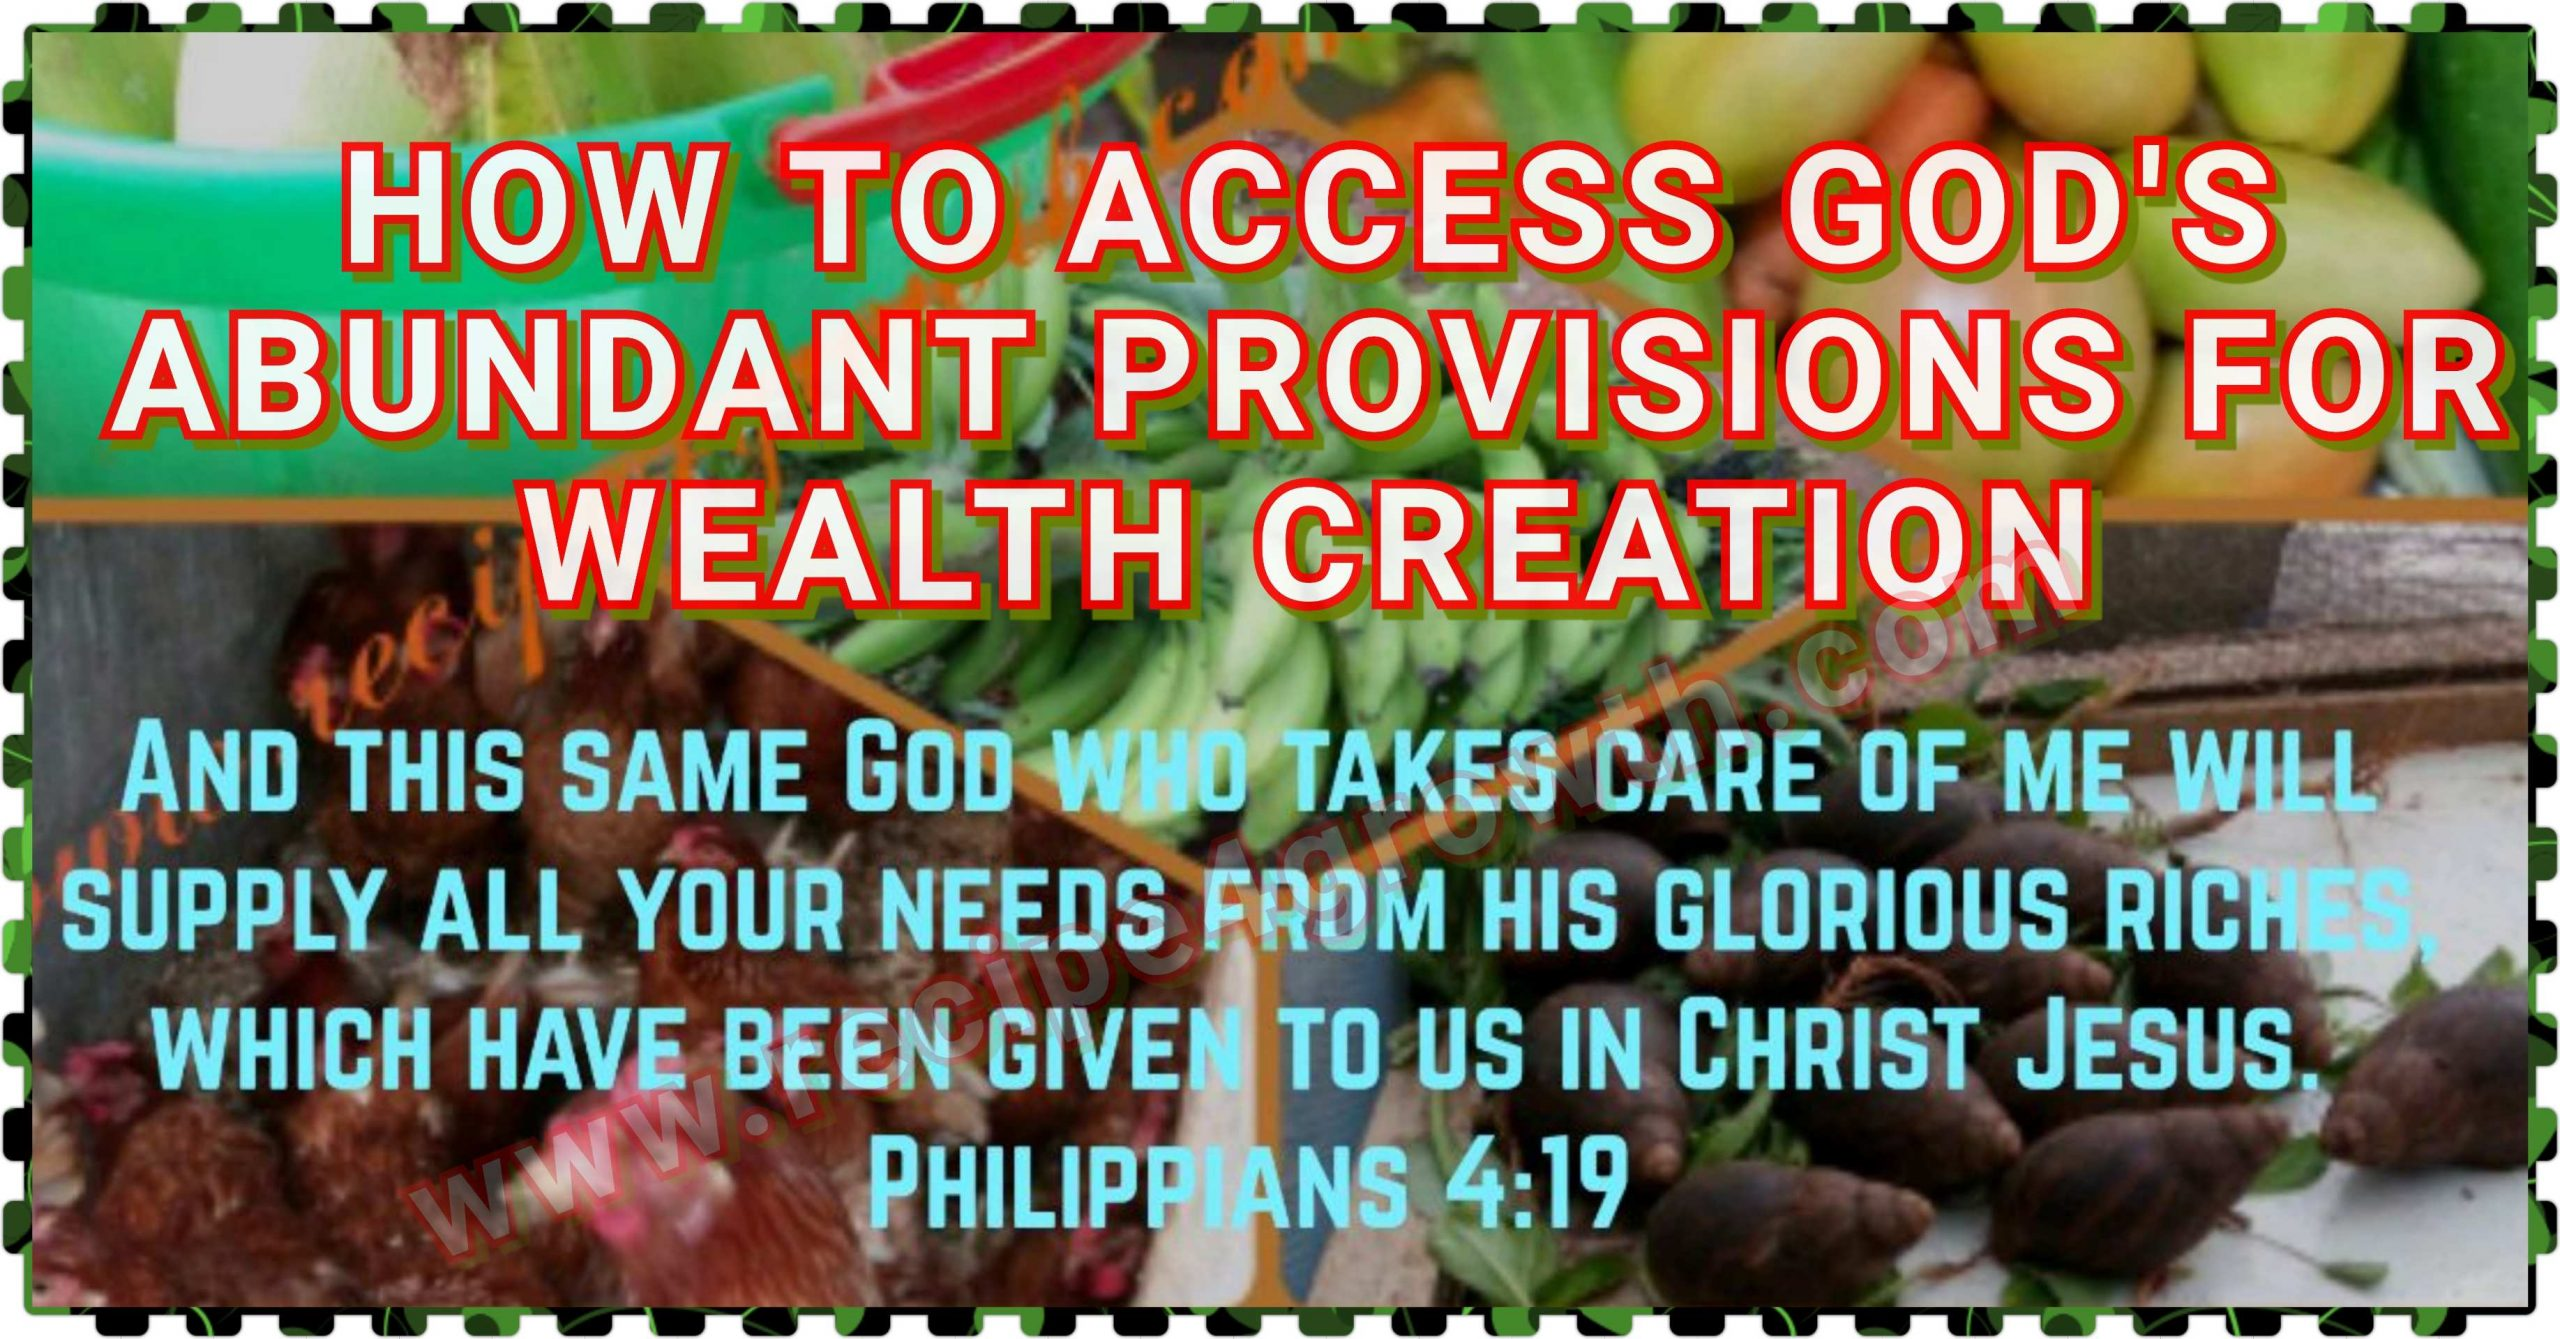 HOW TO ACCESS GOD'S ABUNDANT PROVISIONS